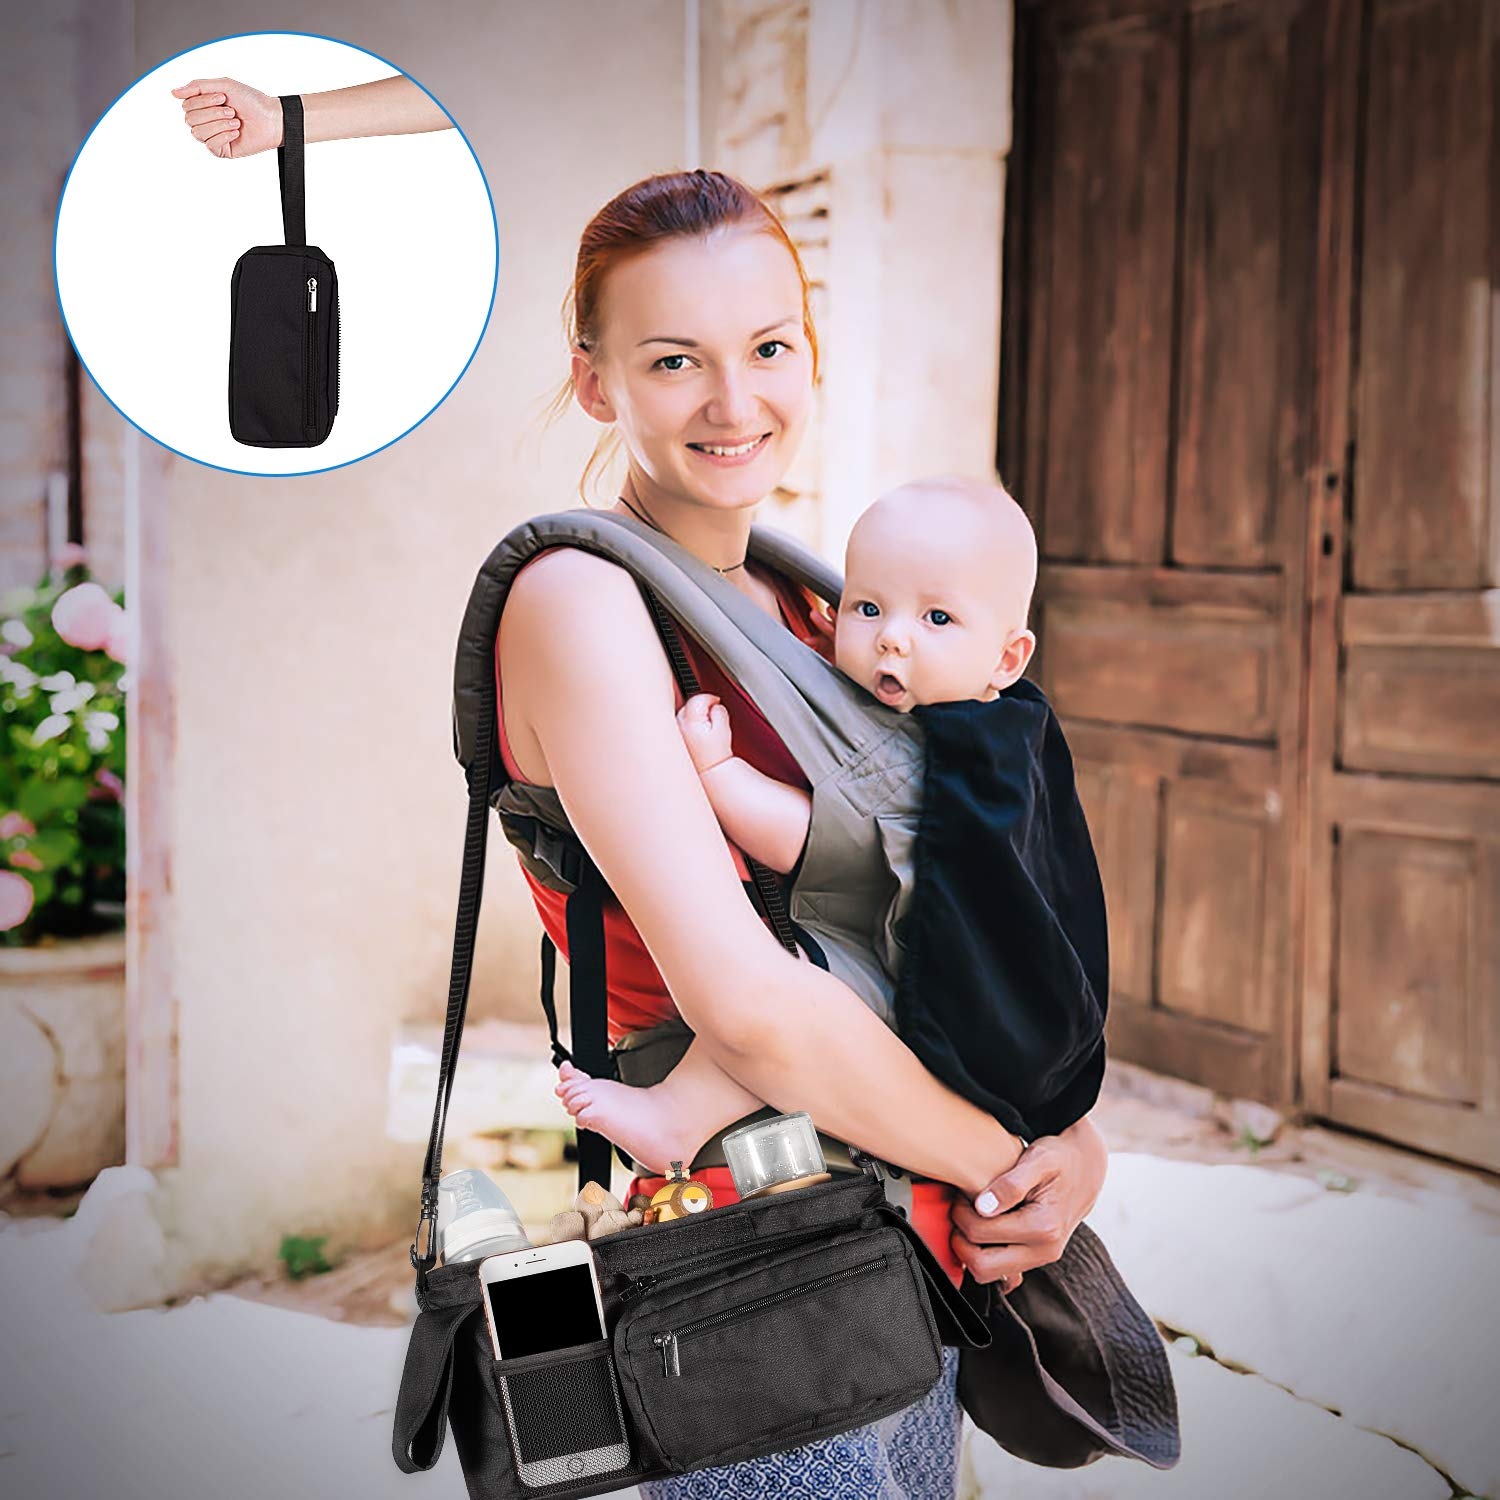 Universal Stroller Organizer with 2 Insulated Cup Holders, Lupantte Stroller Accessories, for Carrying Diaper, iPhone, Toys & Snacks, Fits Britax, Uppababy, Baby Jogger, Bugaboo and BOB Stroller. by Lupantte (Image #5)